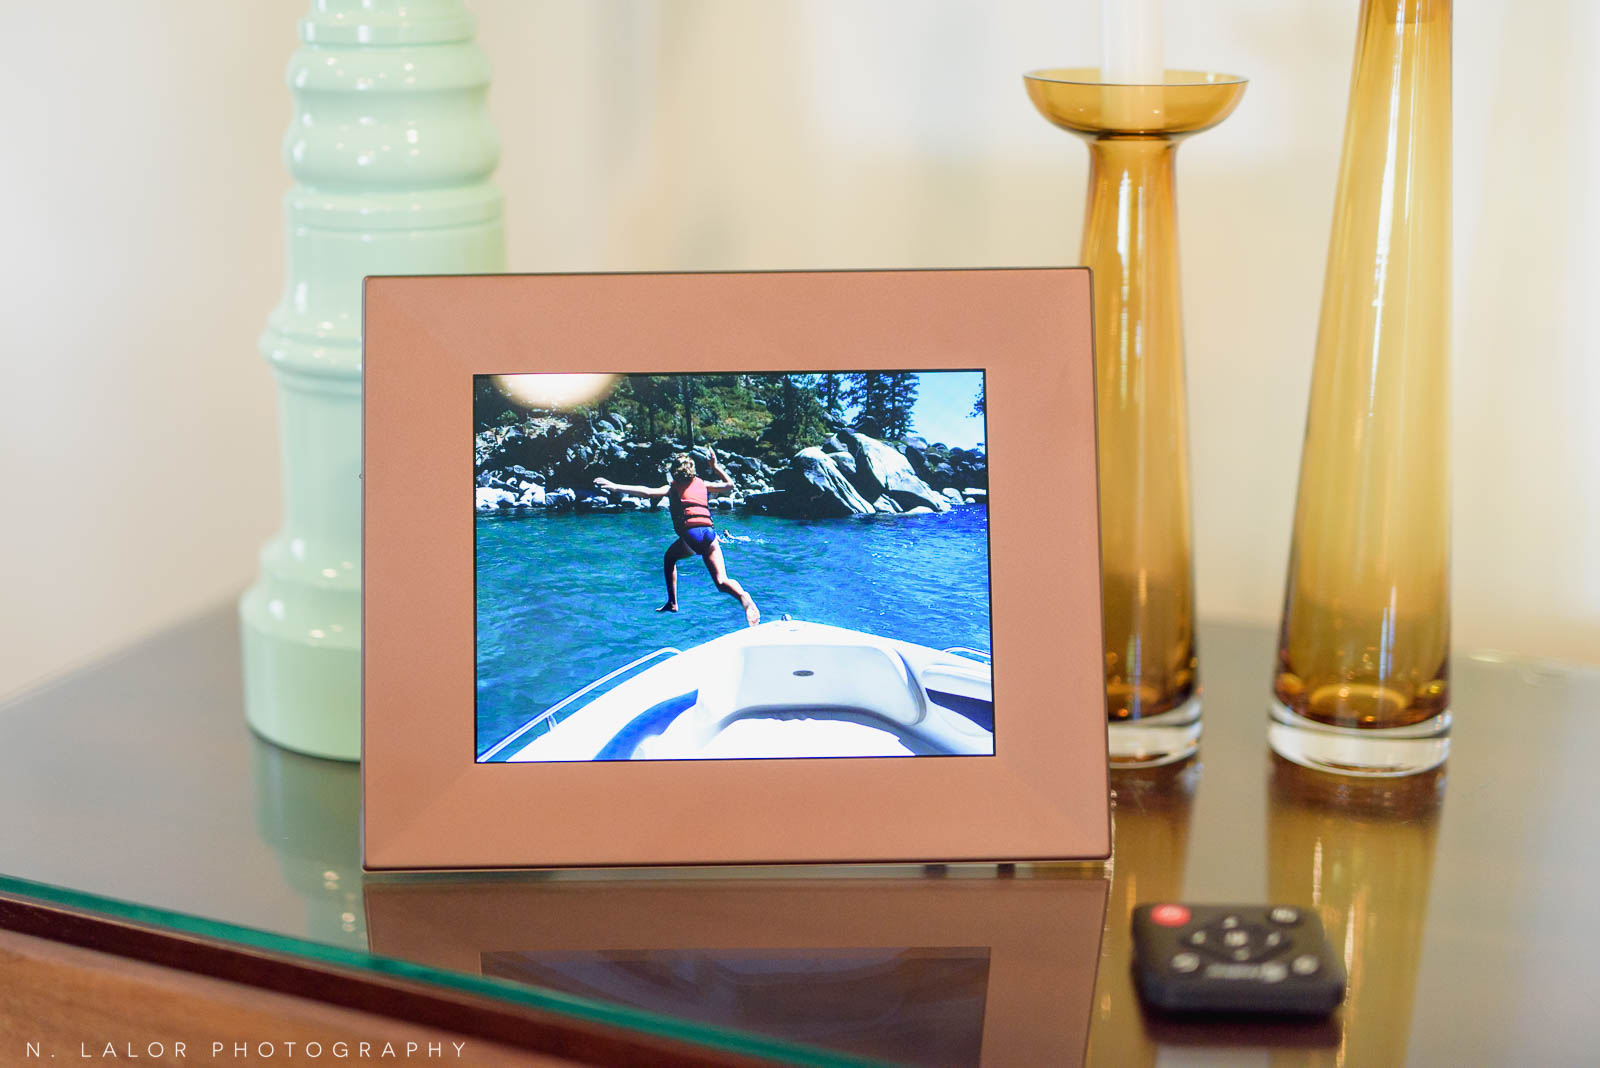 Image of digital frame with vacation photo on table. Photography by N. Lalor Photography. Studio in Greenwich, Connecticut.